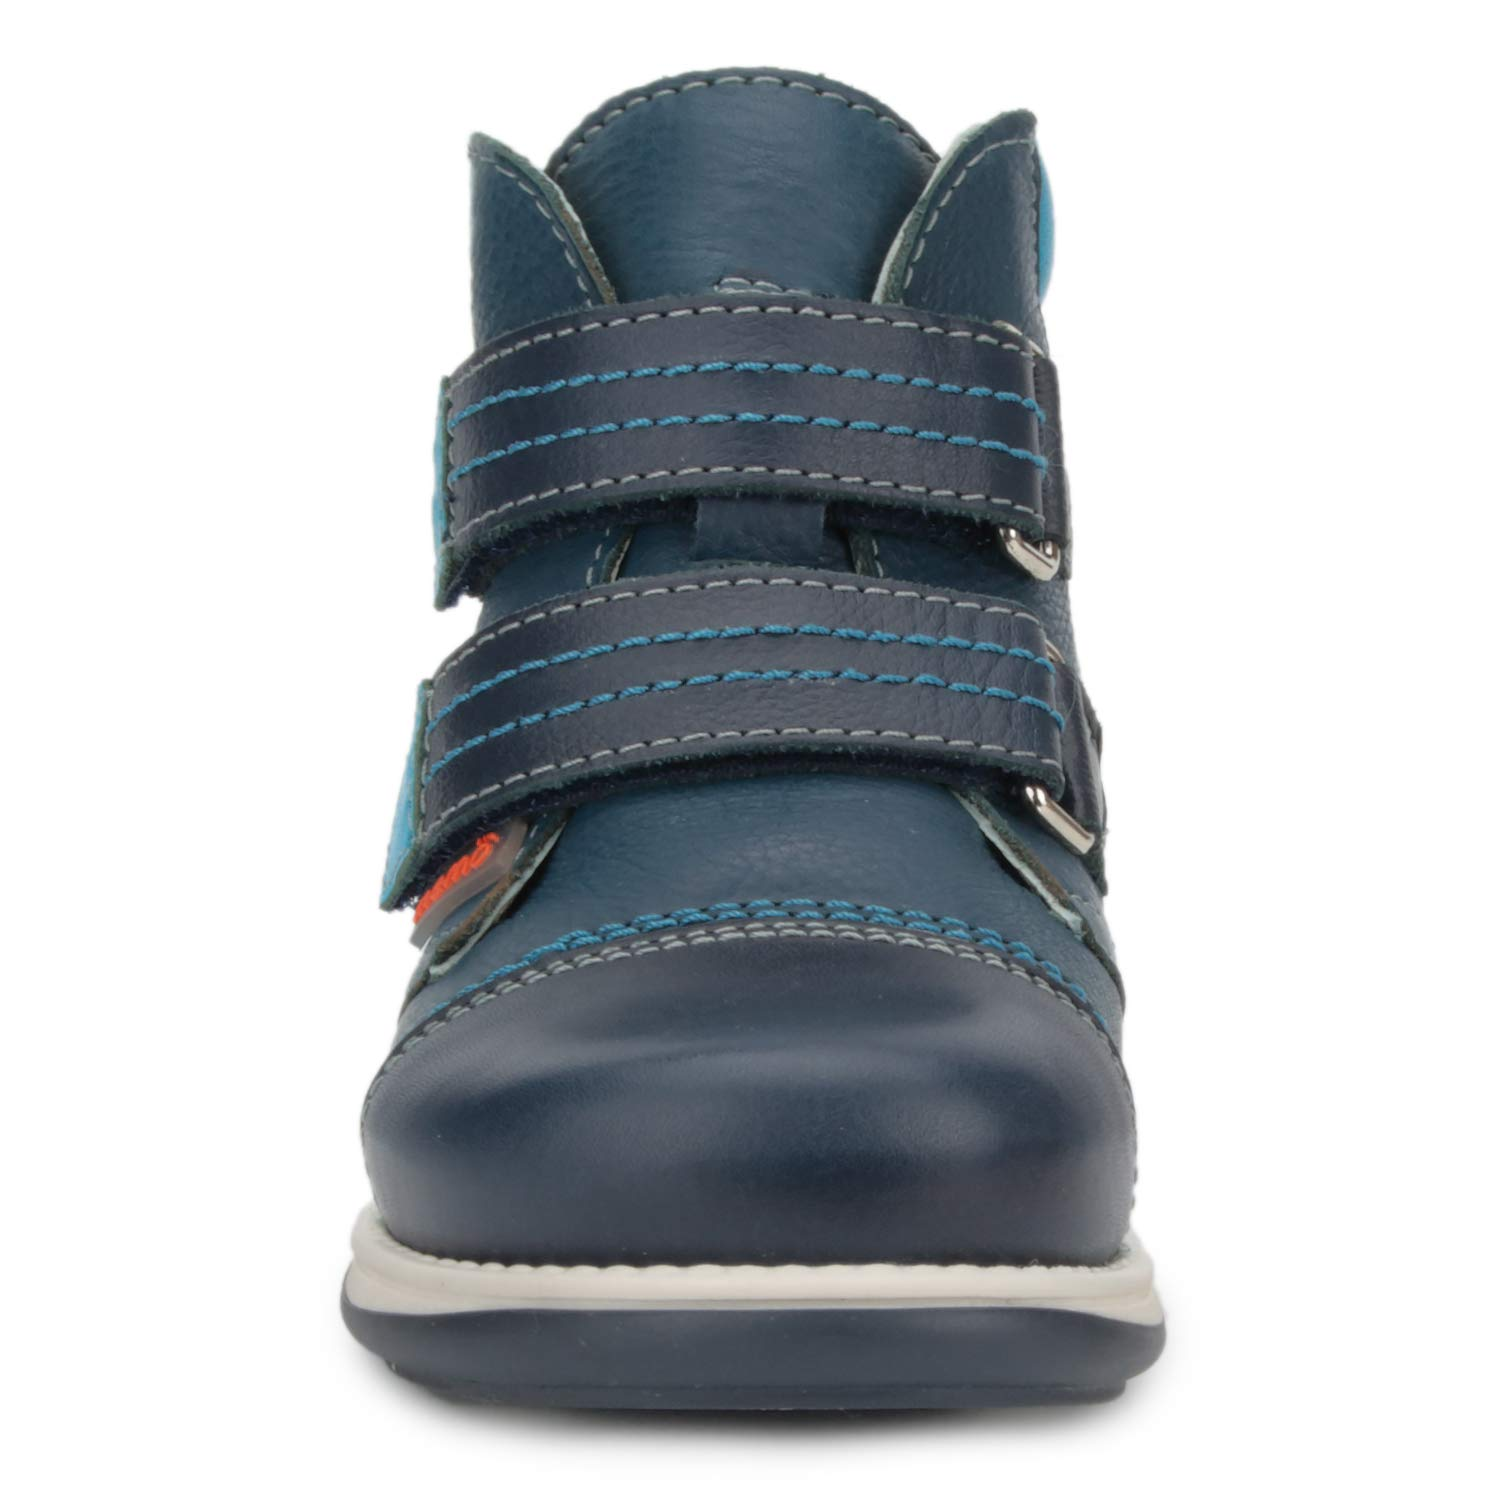 Memo Alex Boys' Corrective Orthopedic High-Top Leather Boot Diagnostic Sole, Navy Blue, 22 (6.5 M US Toddler) by Memo (Image #7)